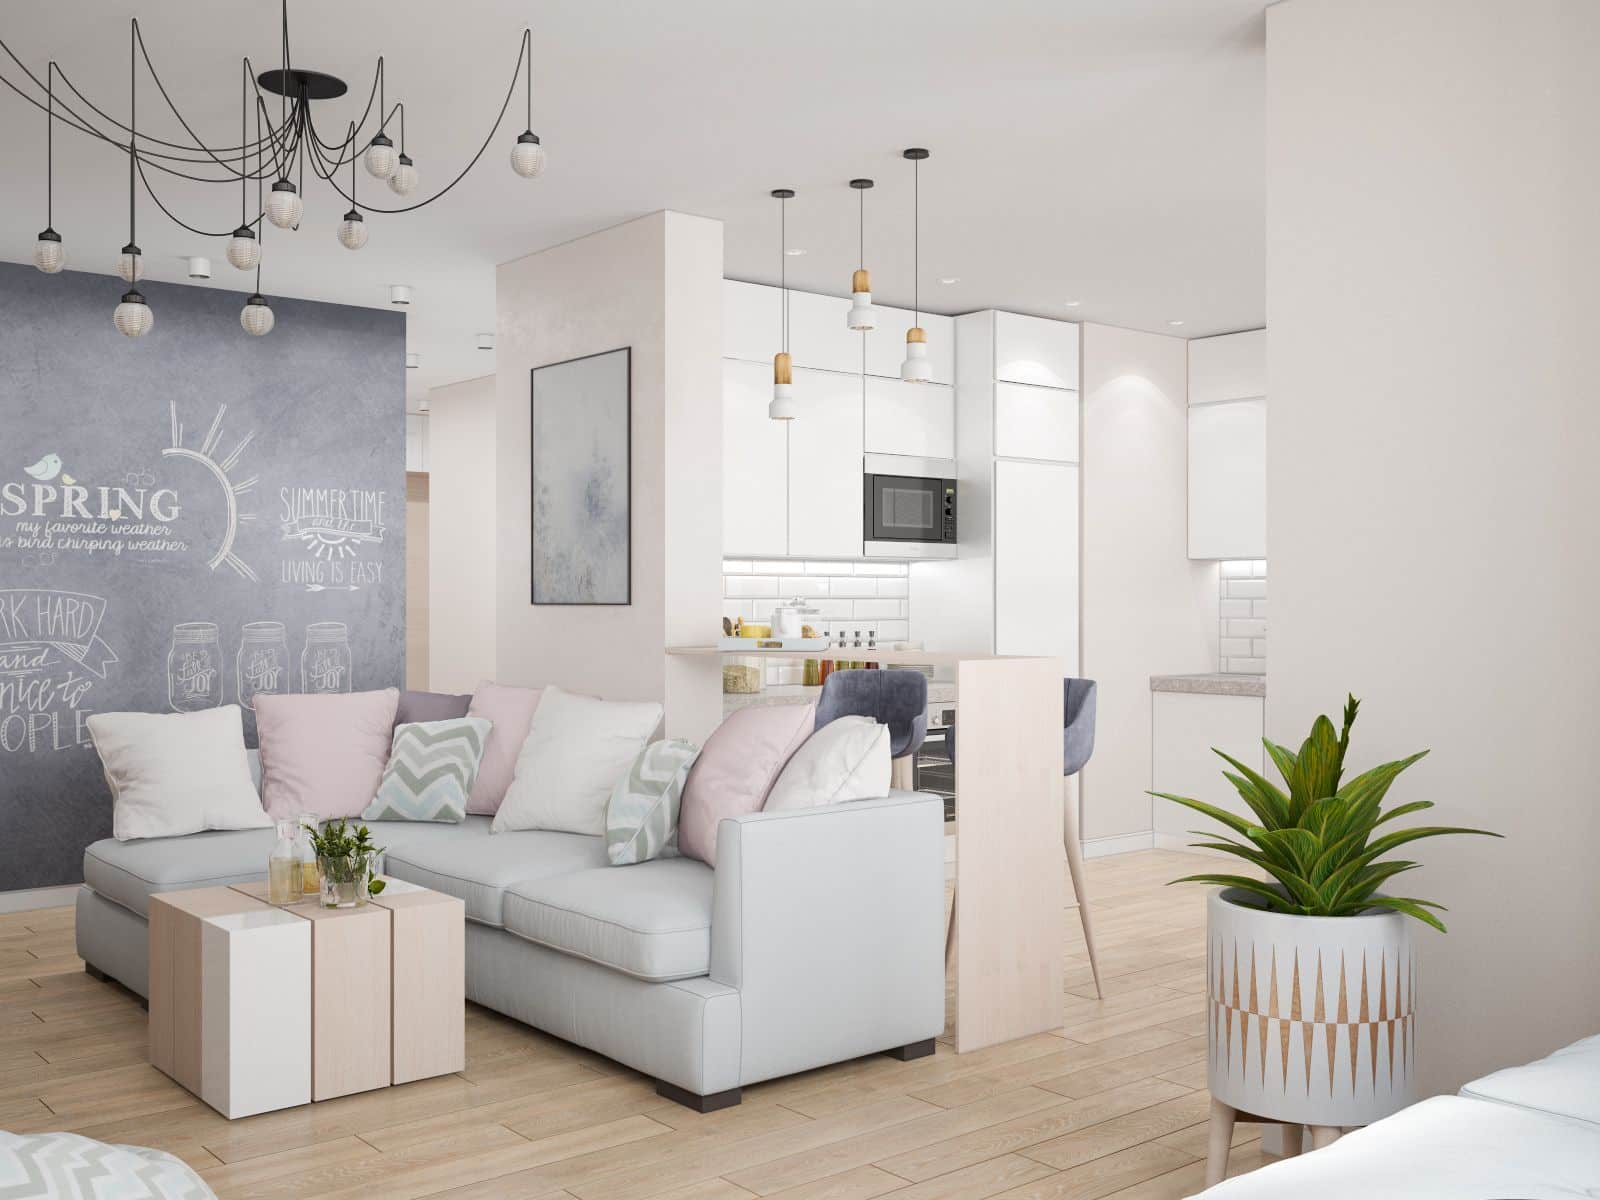 How to Maximise the Space in Your Home. Luxurious modern designed living room of open layout in light pastel colors with abundance of furnishing